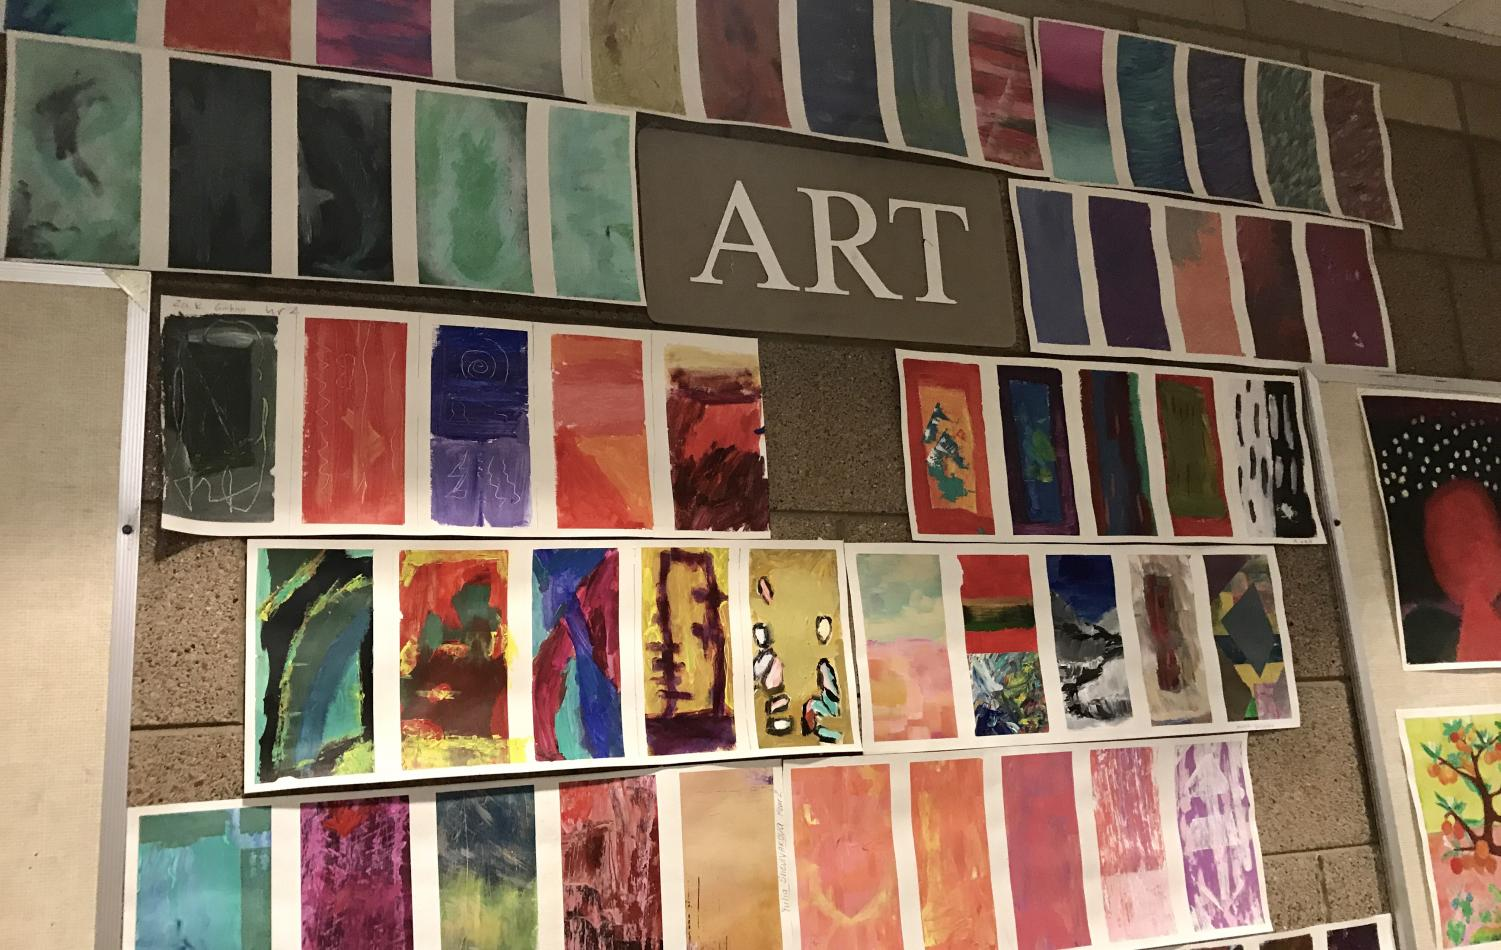 These are examples art hung up in the art wing of SAHS. These were created, by students in art teacher Peter Koltuns painting class earlier this month.